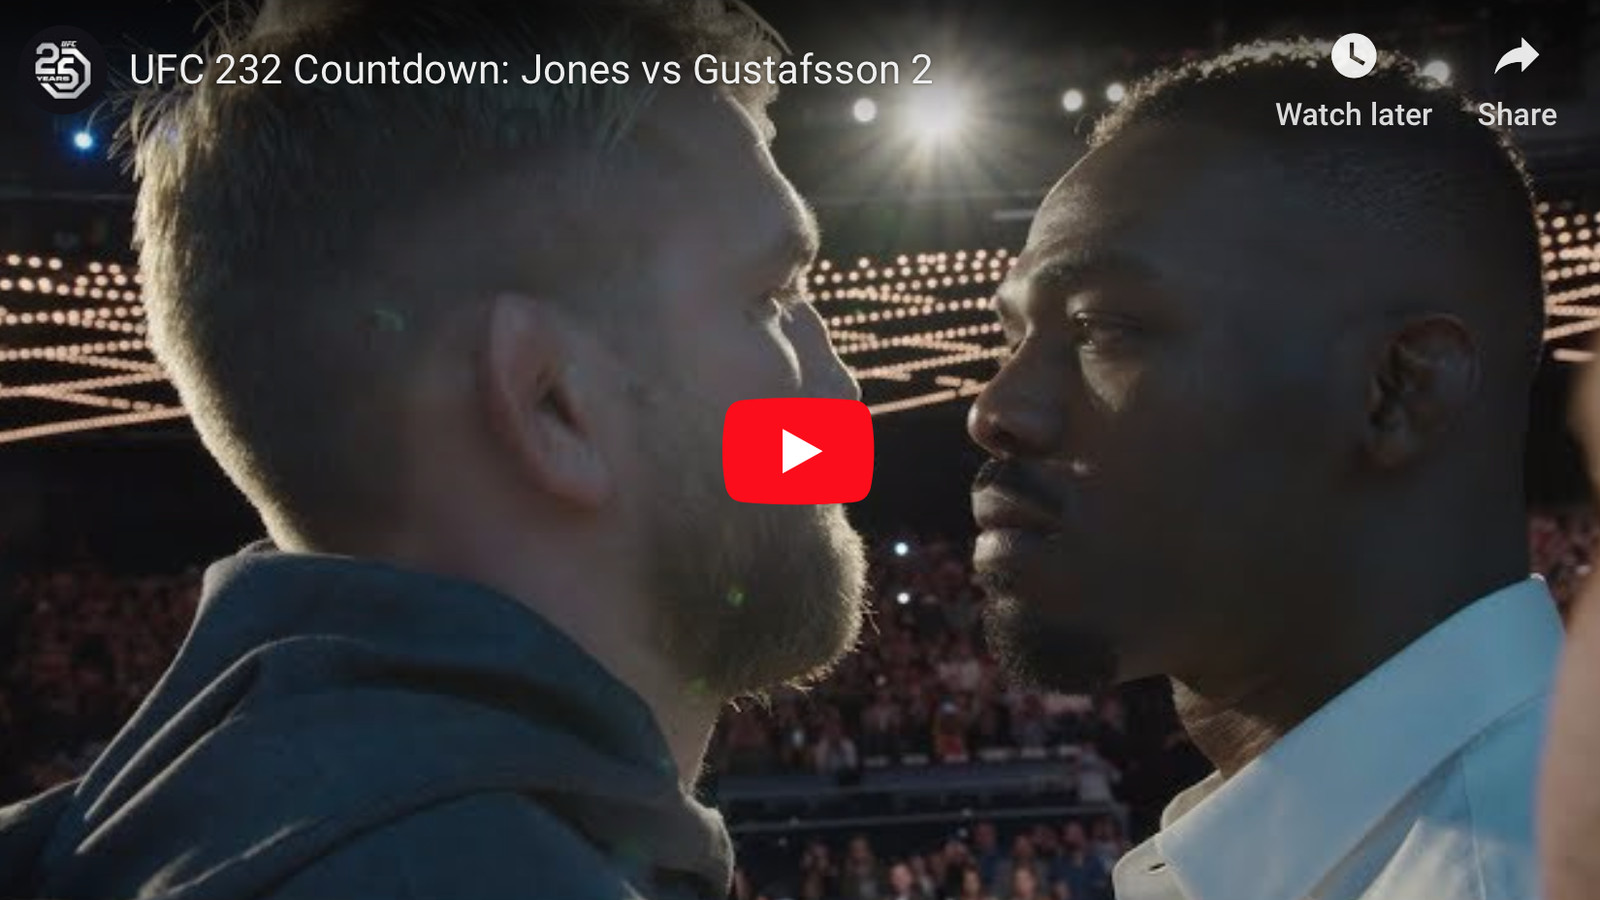 Video: 'Countdown to UFC 232' full video replay for 'Jones vs Gustafsson 2' - MMAmania.com